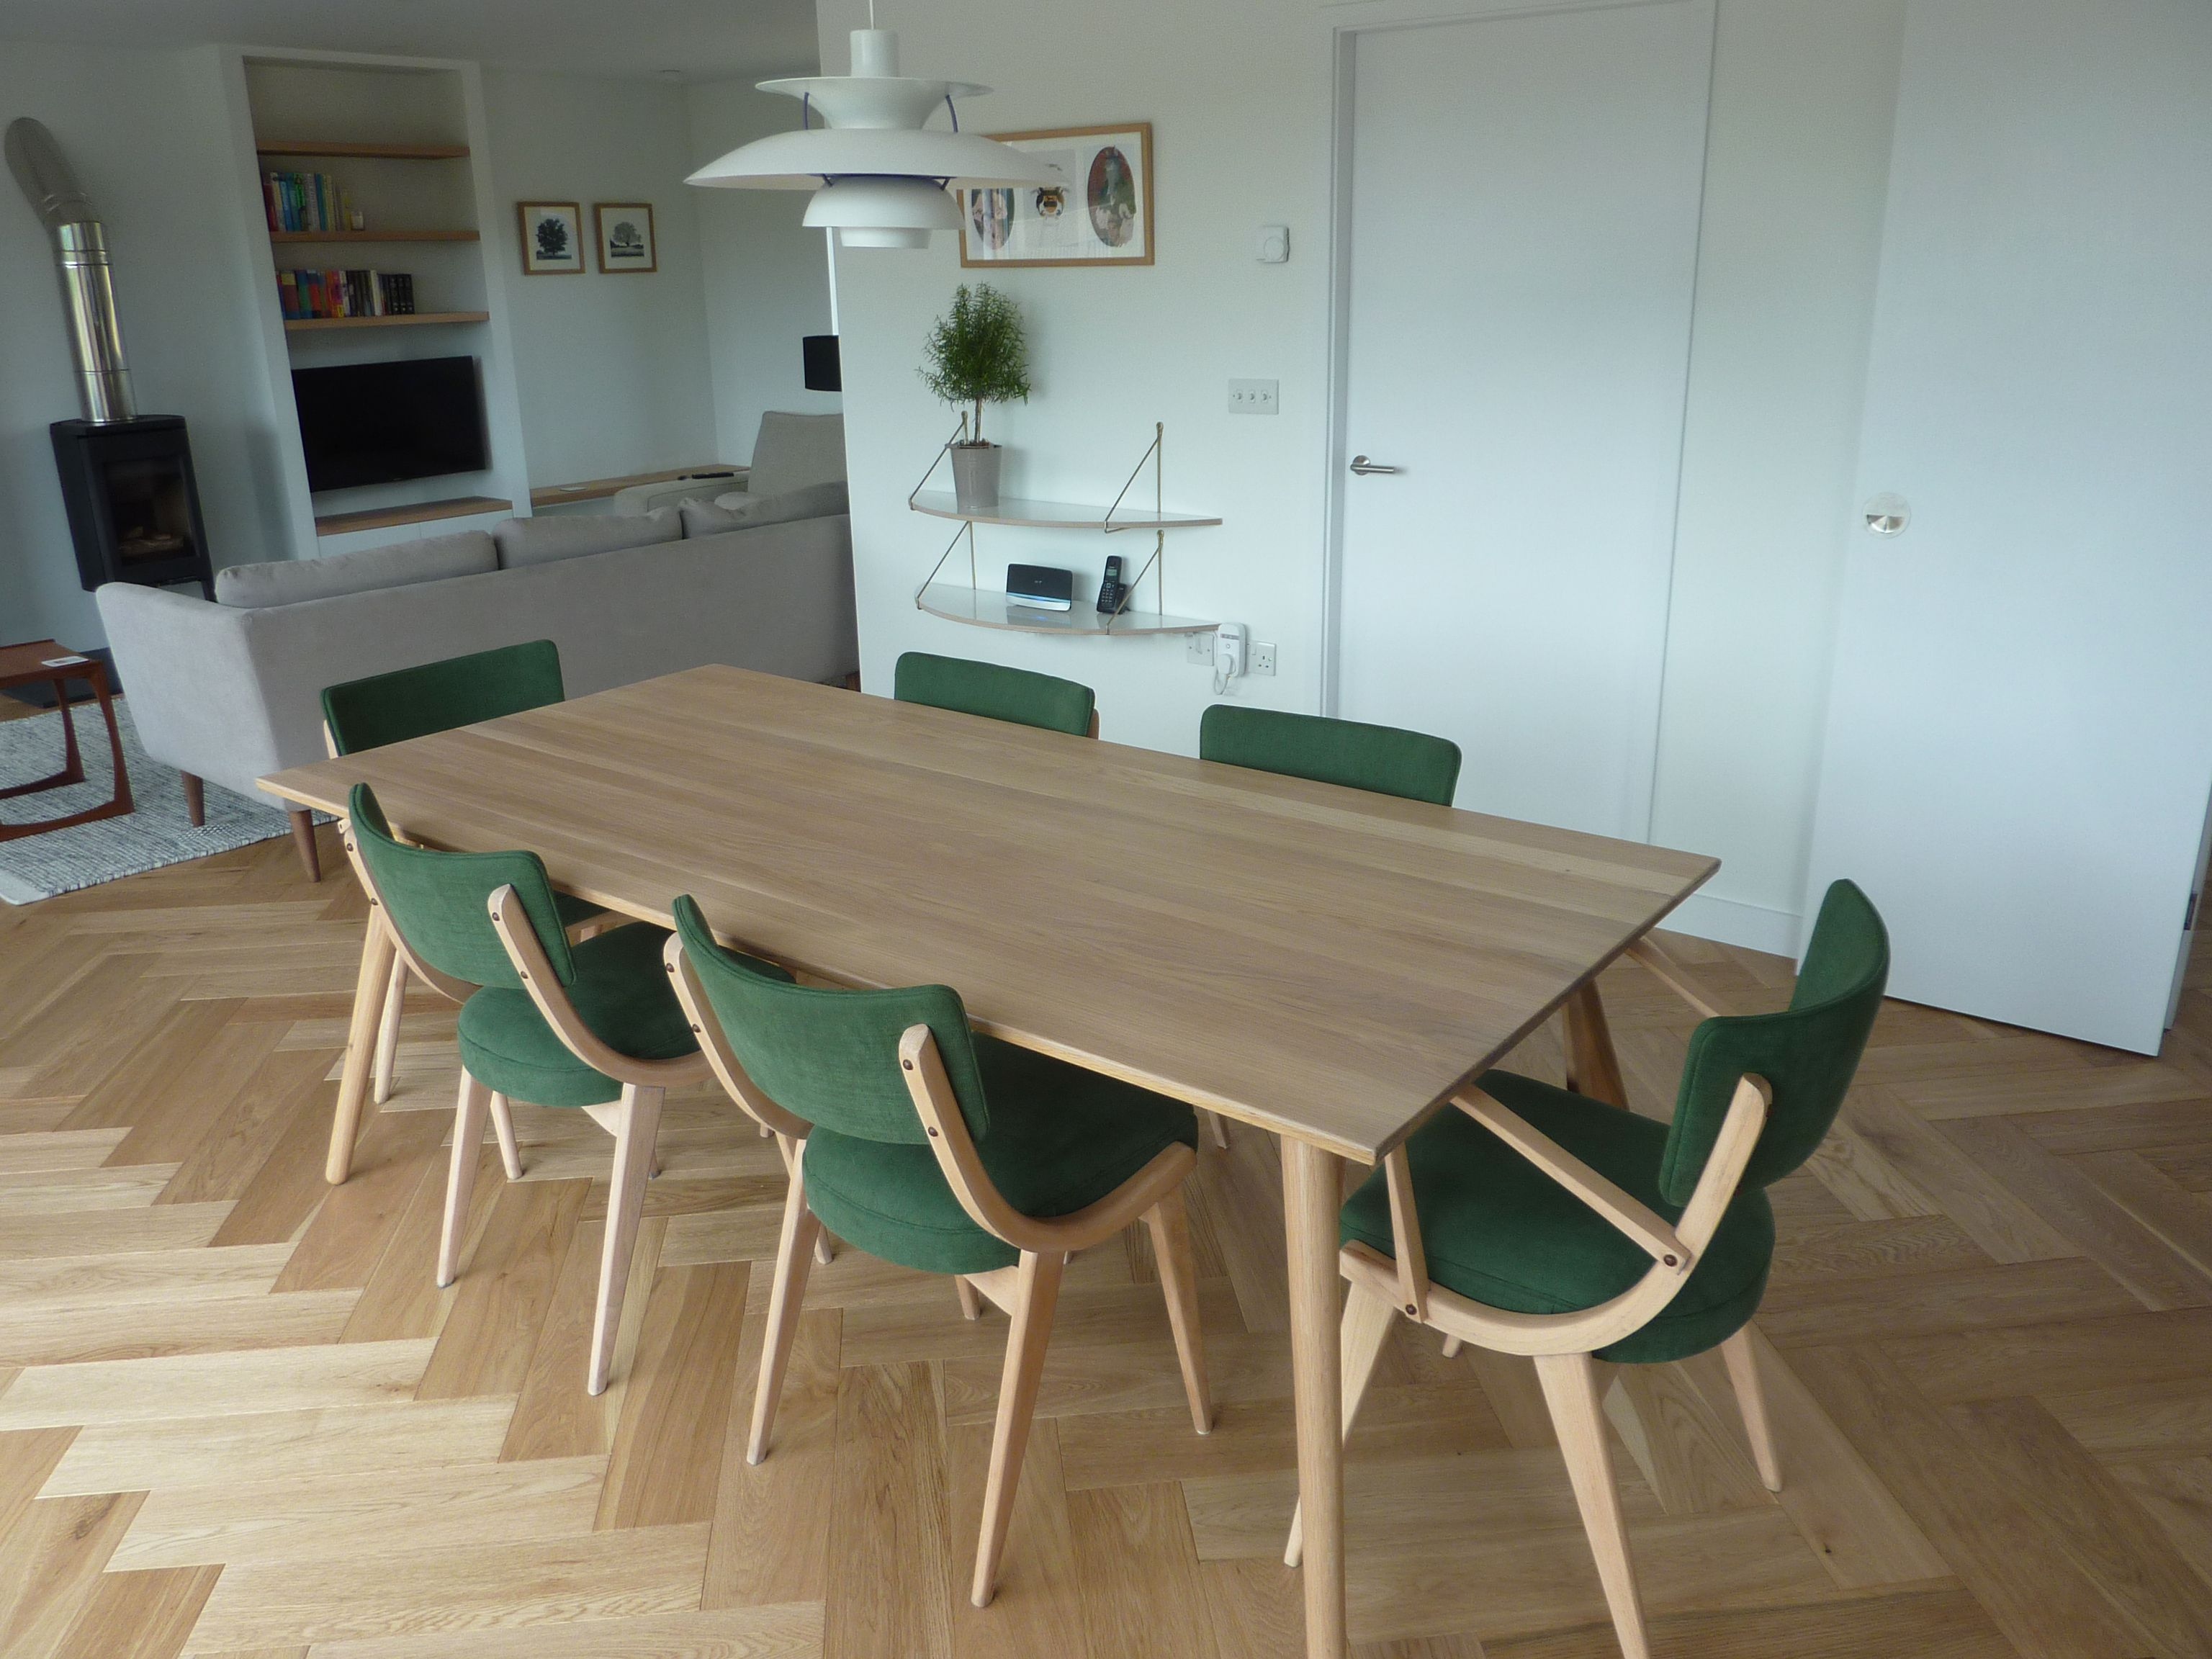 Benchair mid century green dining chair set reupholstered in Romo ...